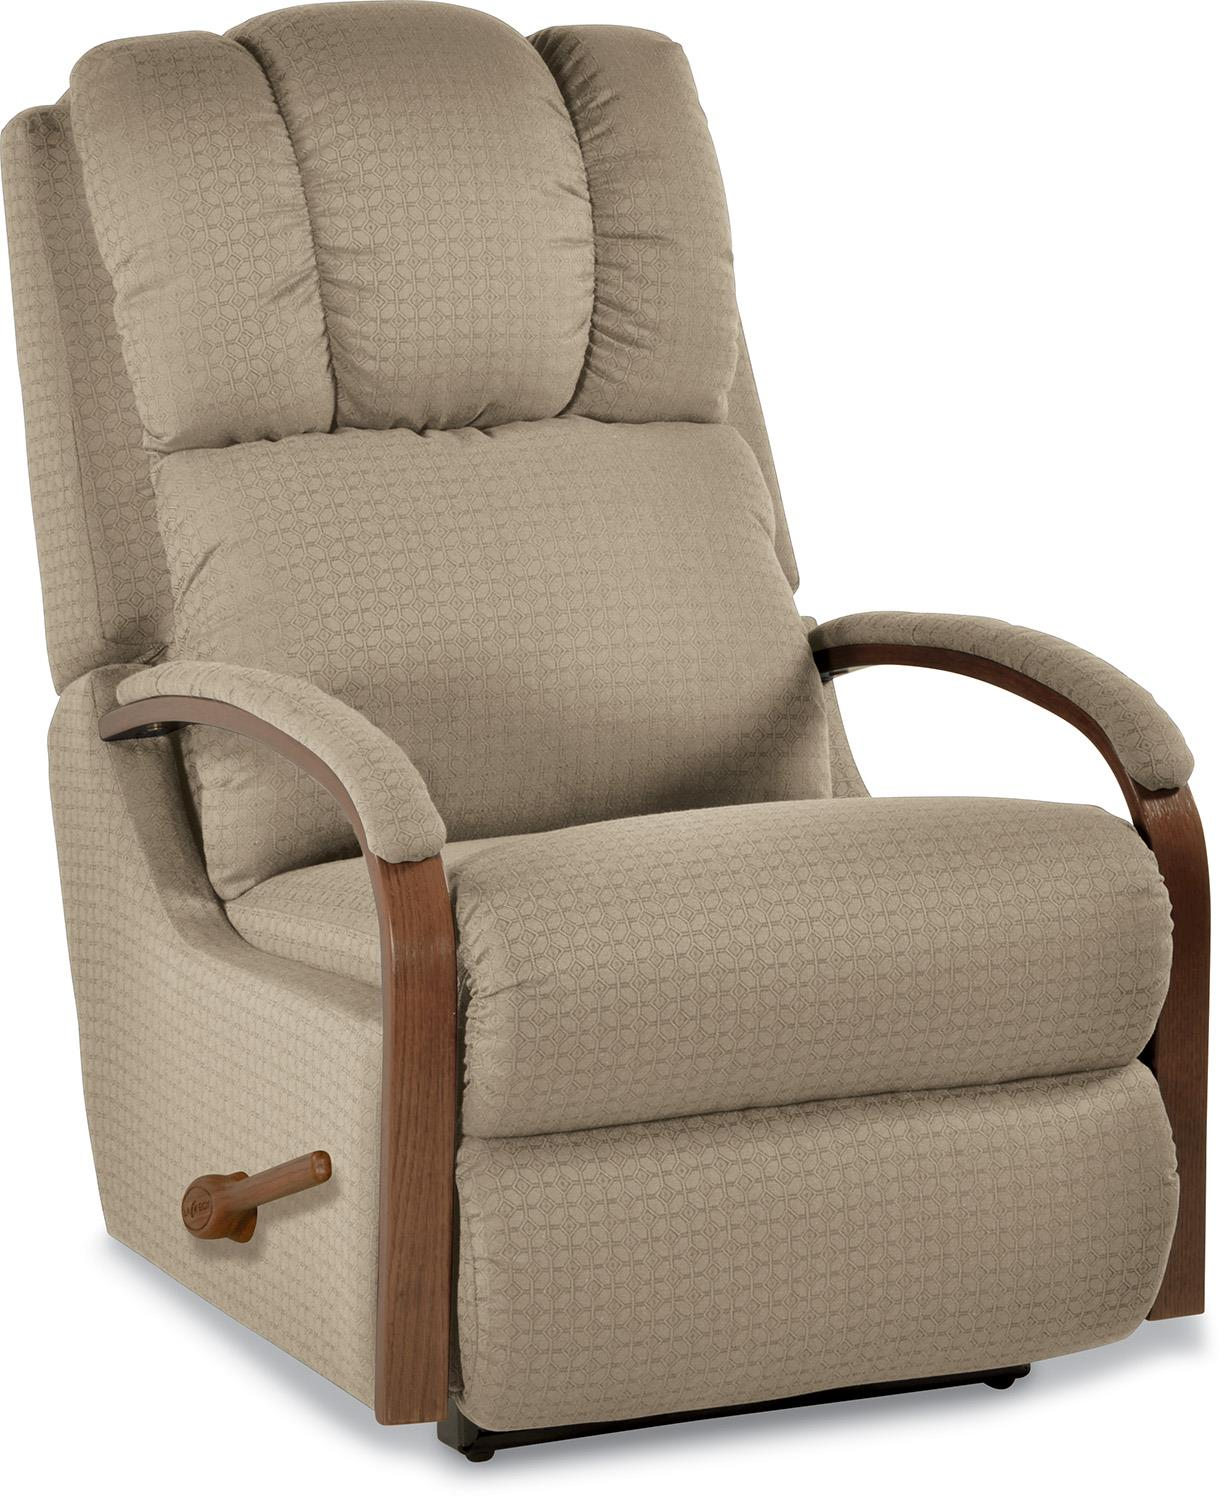 Lazy Boy Swivel Chair Harbor Town Reclina Way Reclining Chair By La Z Boy